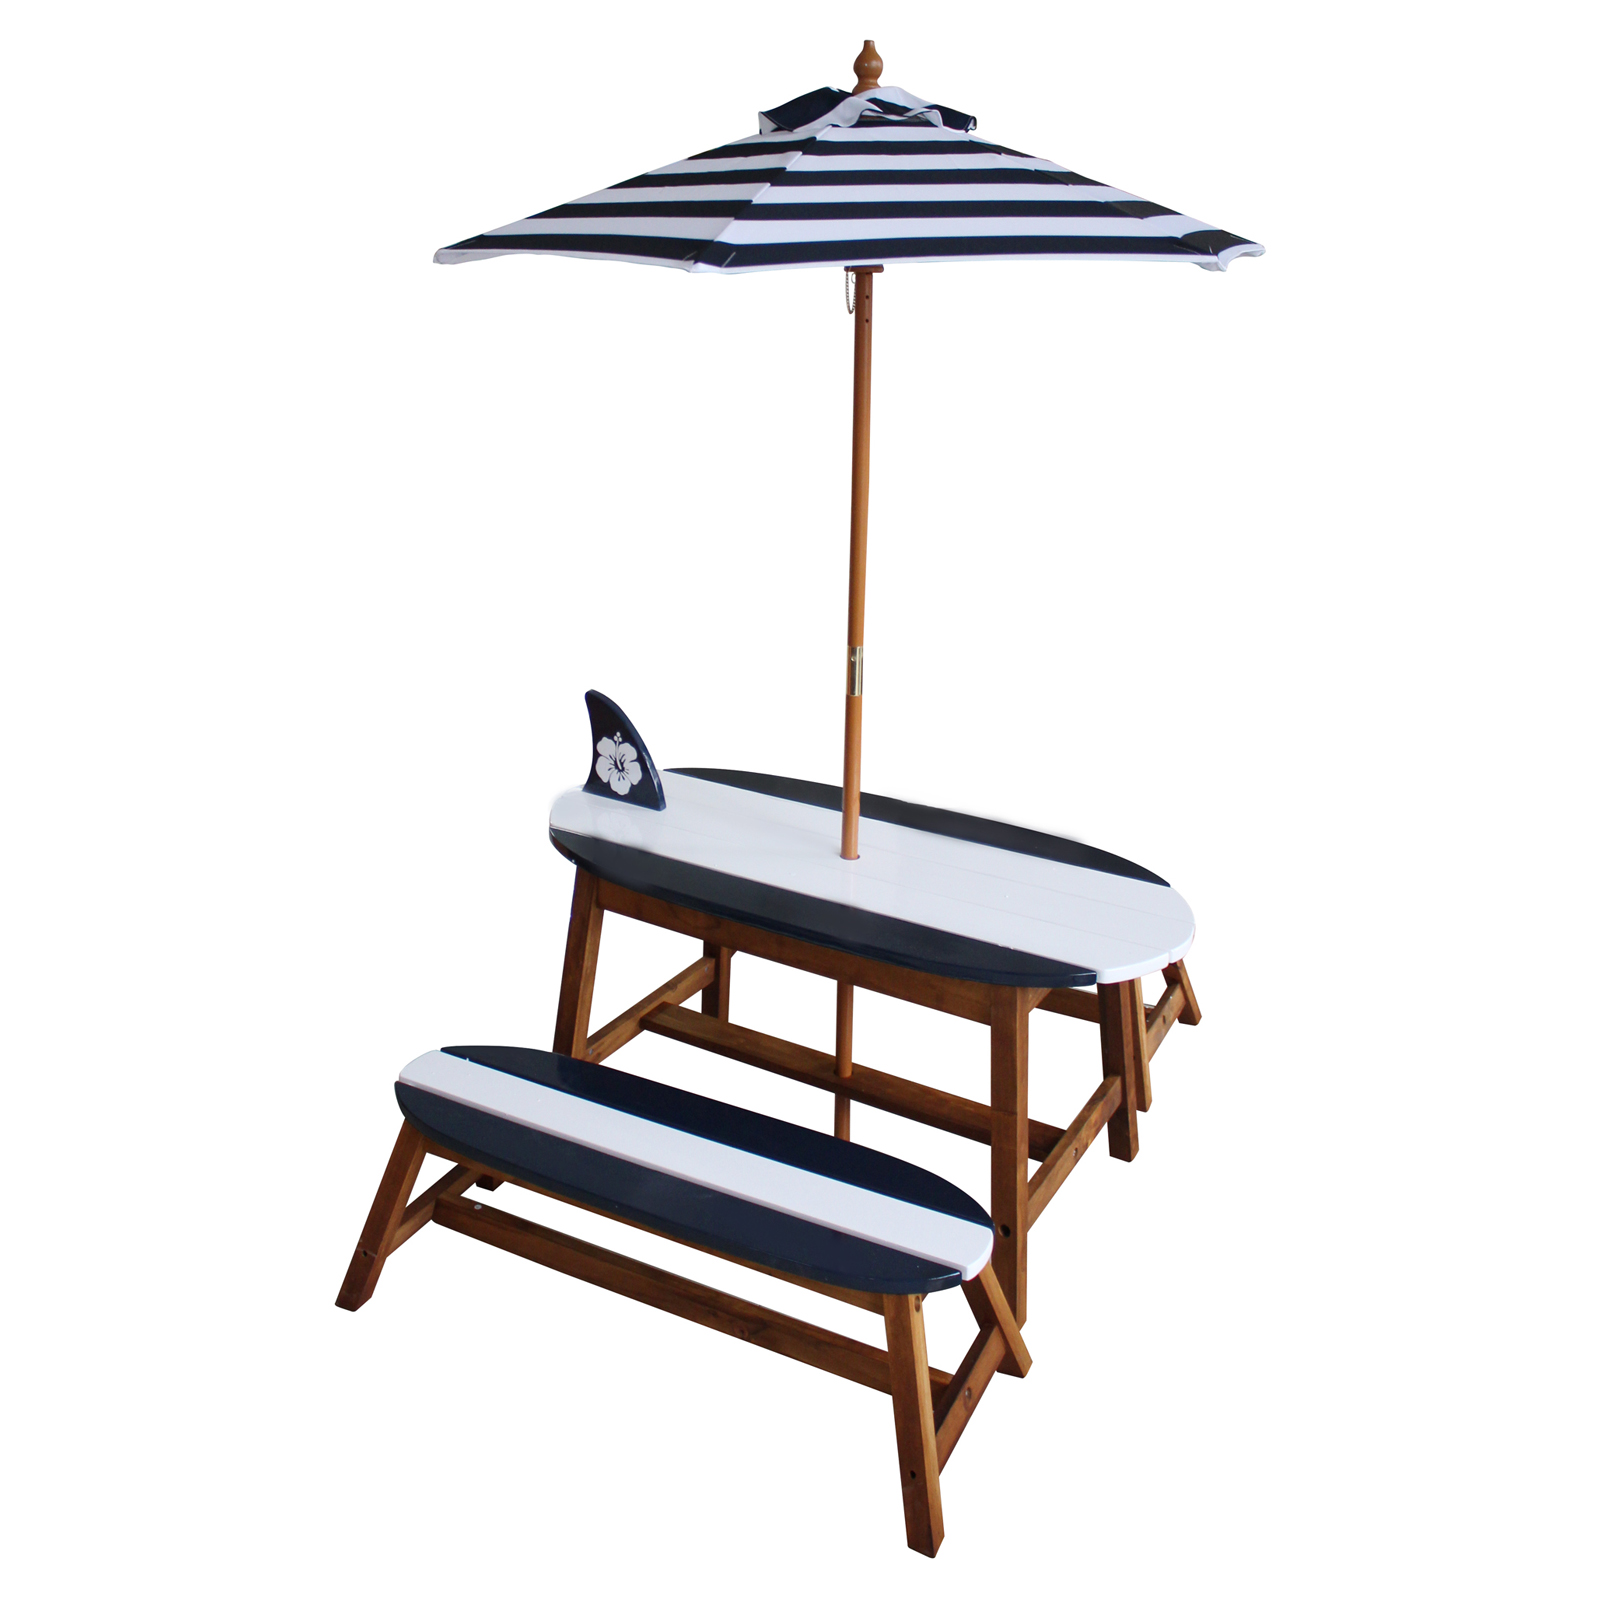 Surfboard Tables For Sale Teamson Kids Surfboard Outdoor Table And Bench Set With